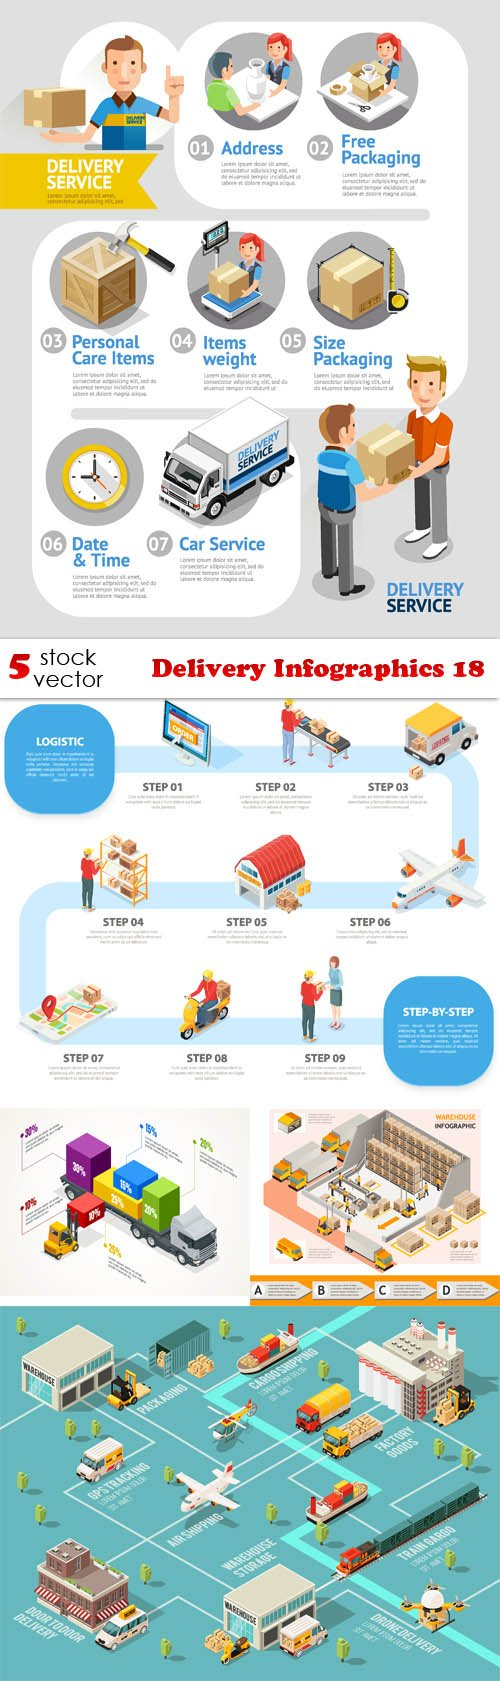 Vectors - Delivery Infographics 18